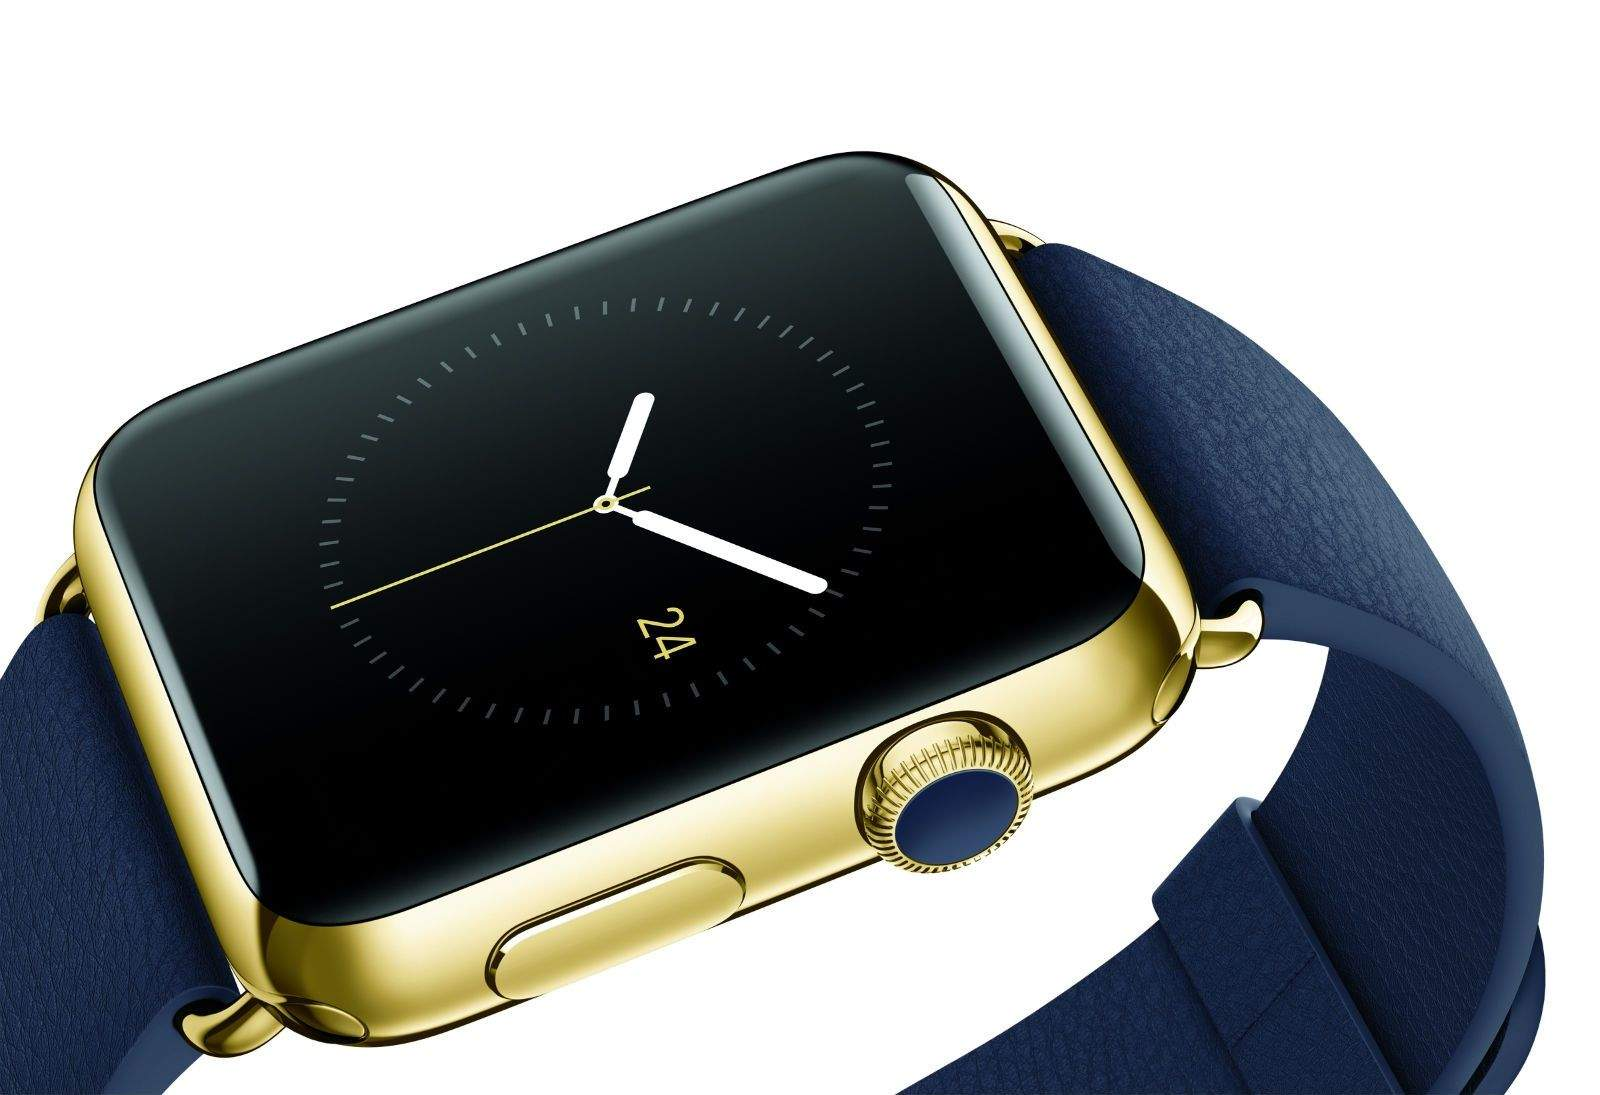 The definitive guide to buying an Apple Watch